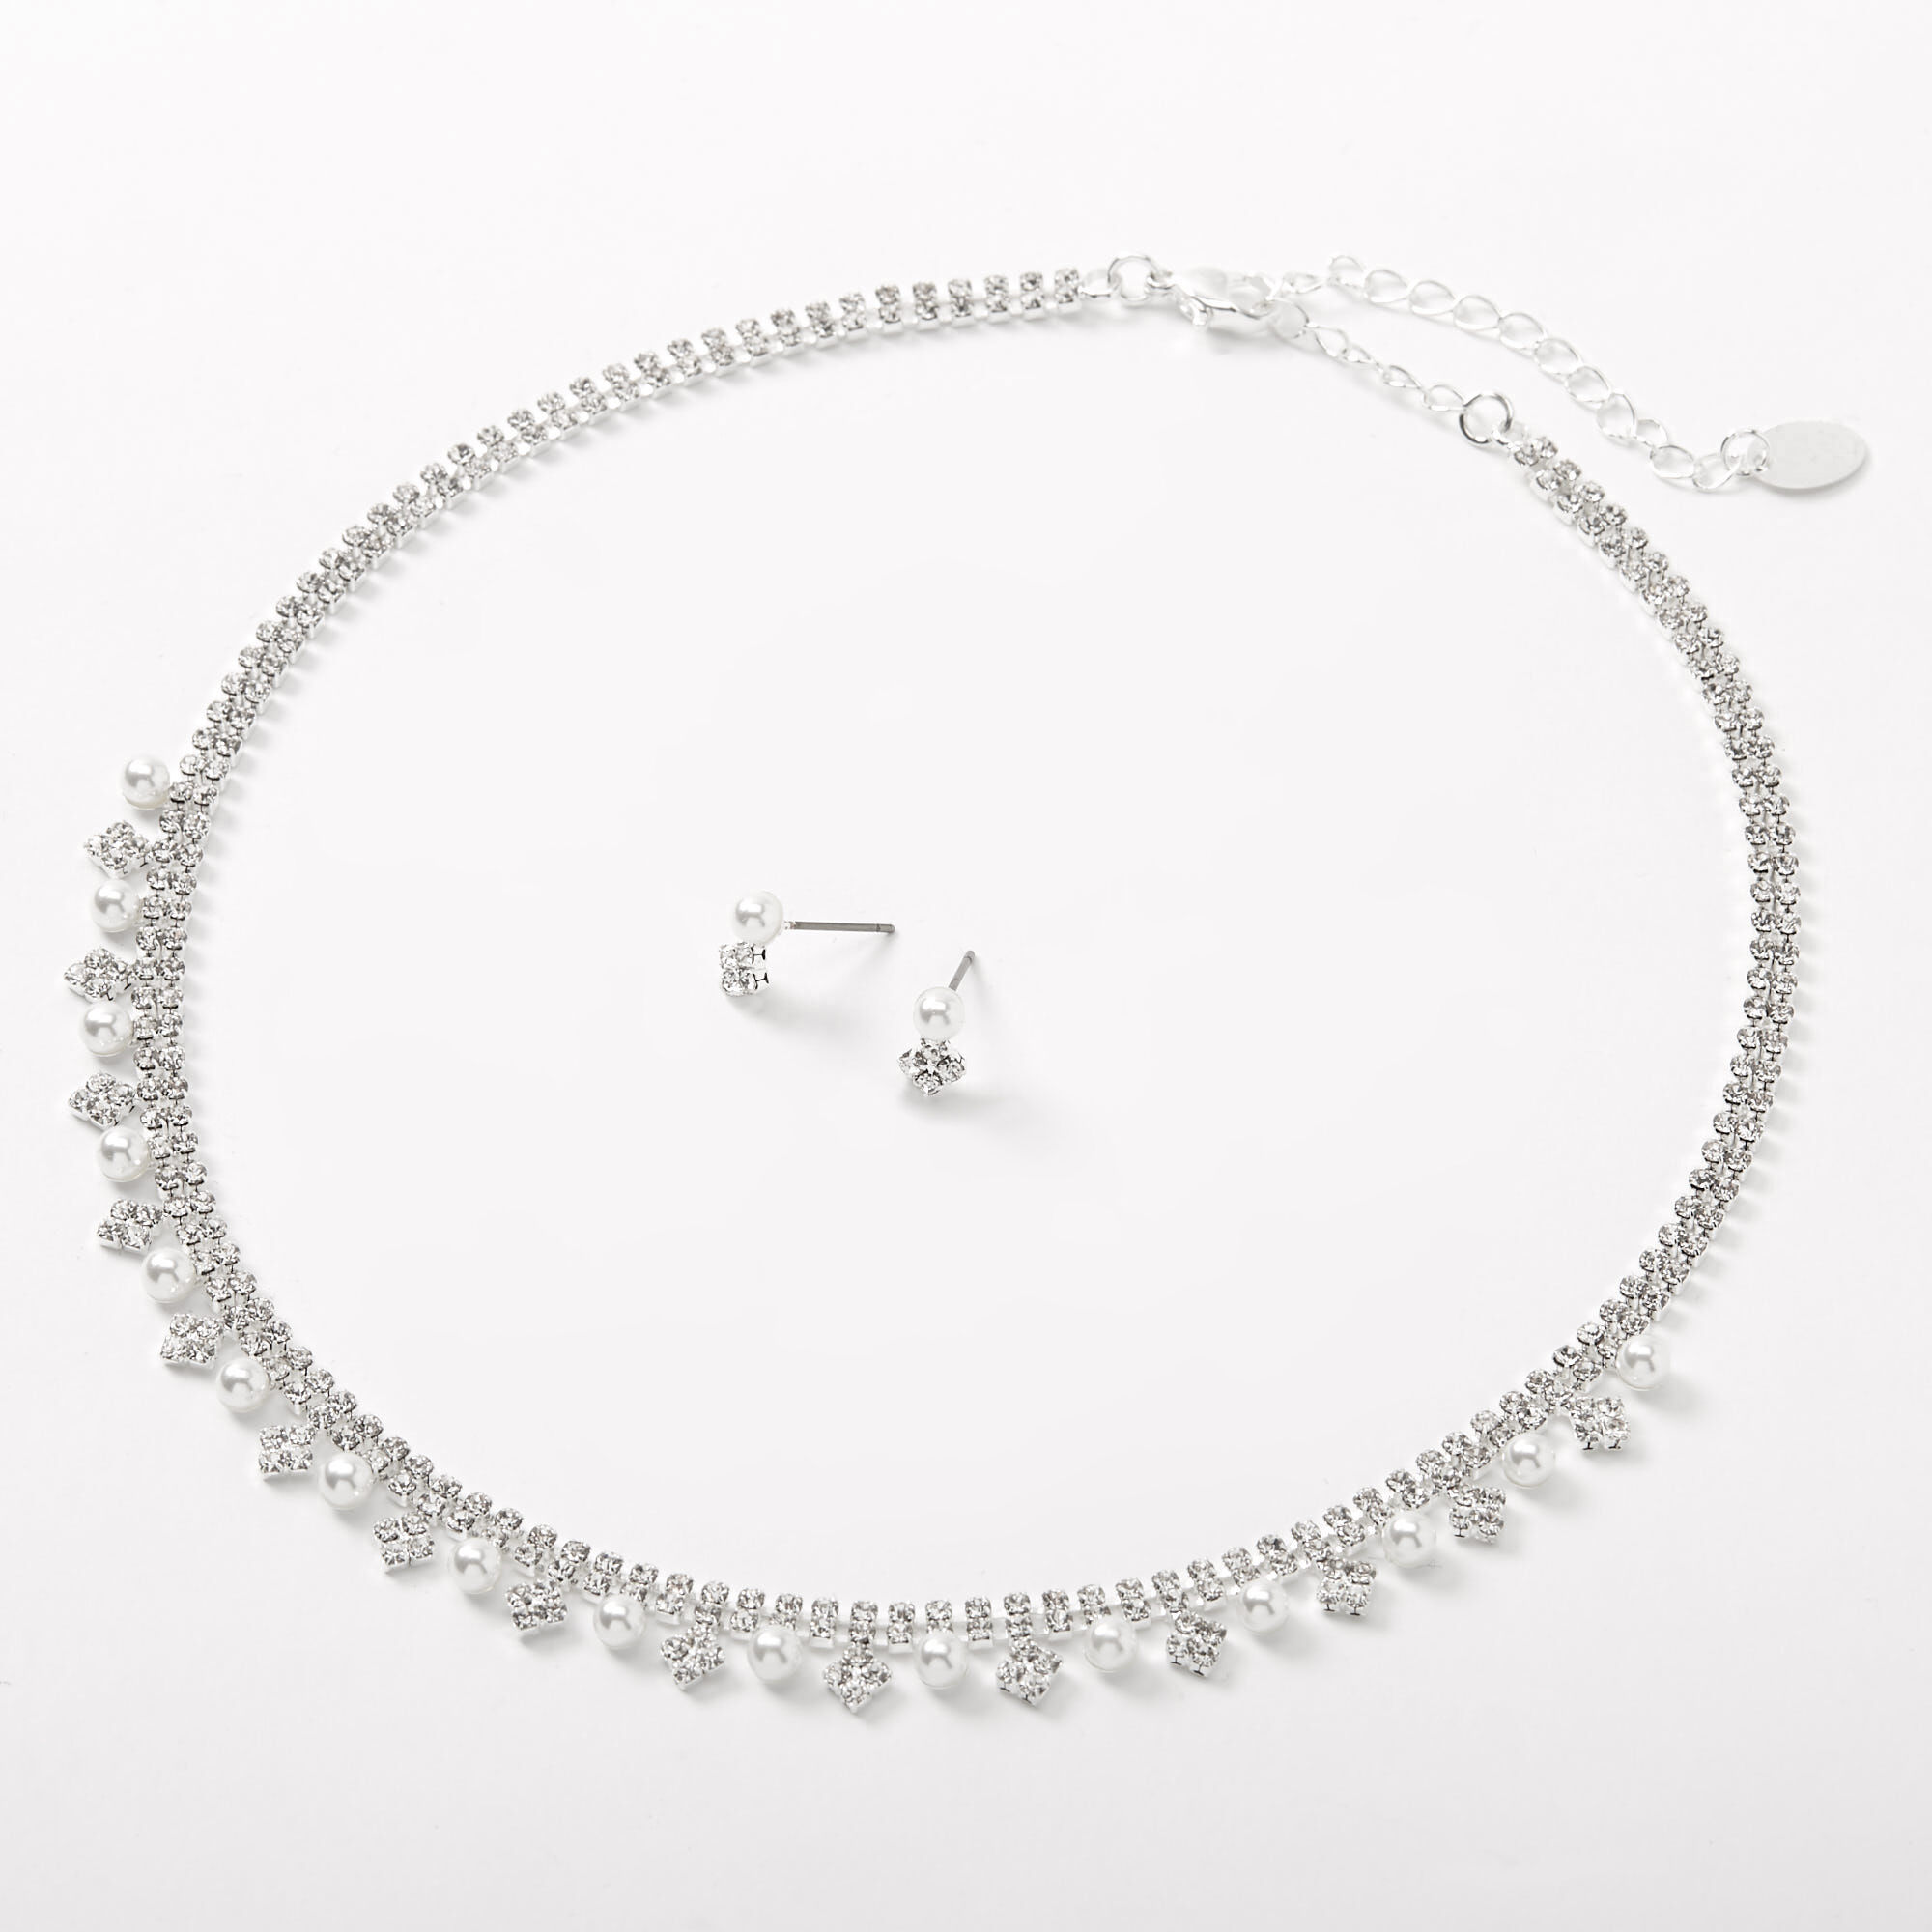 *Glass pearl necklace with rhinestones with matching Earrings and Bracelet*